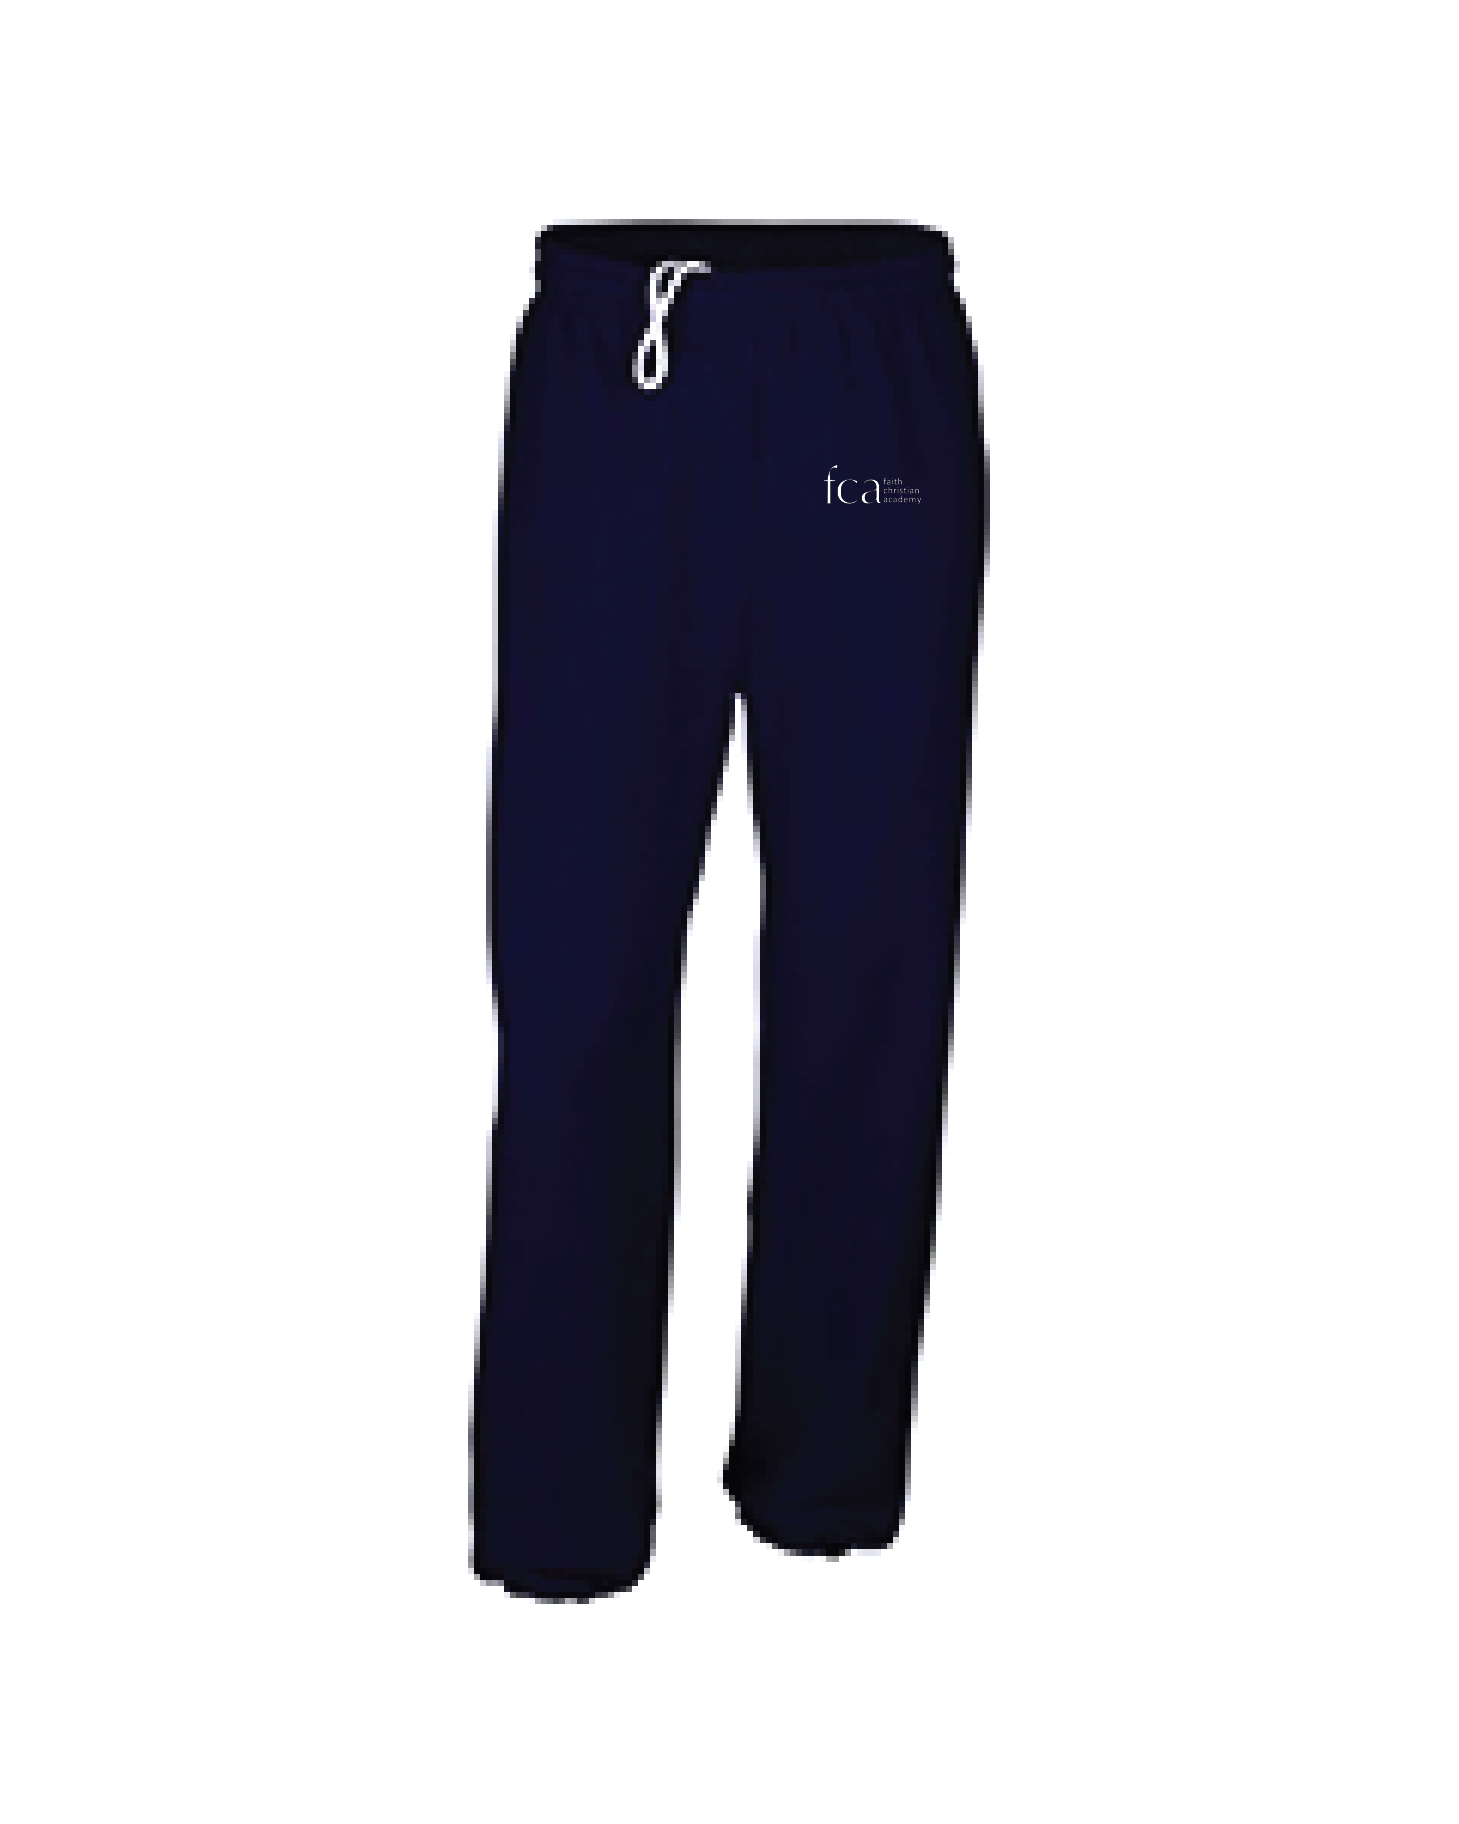 FCA Cotton Gym Sweatpants